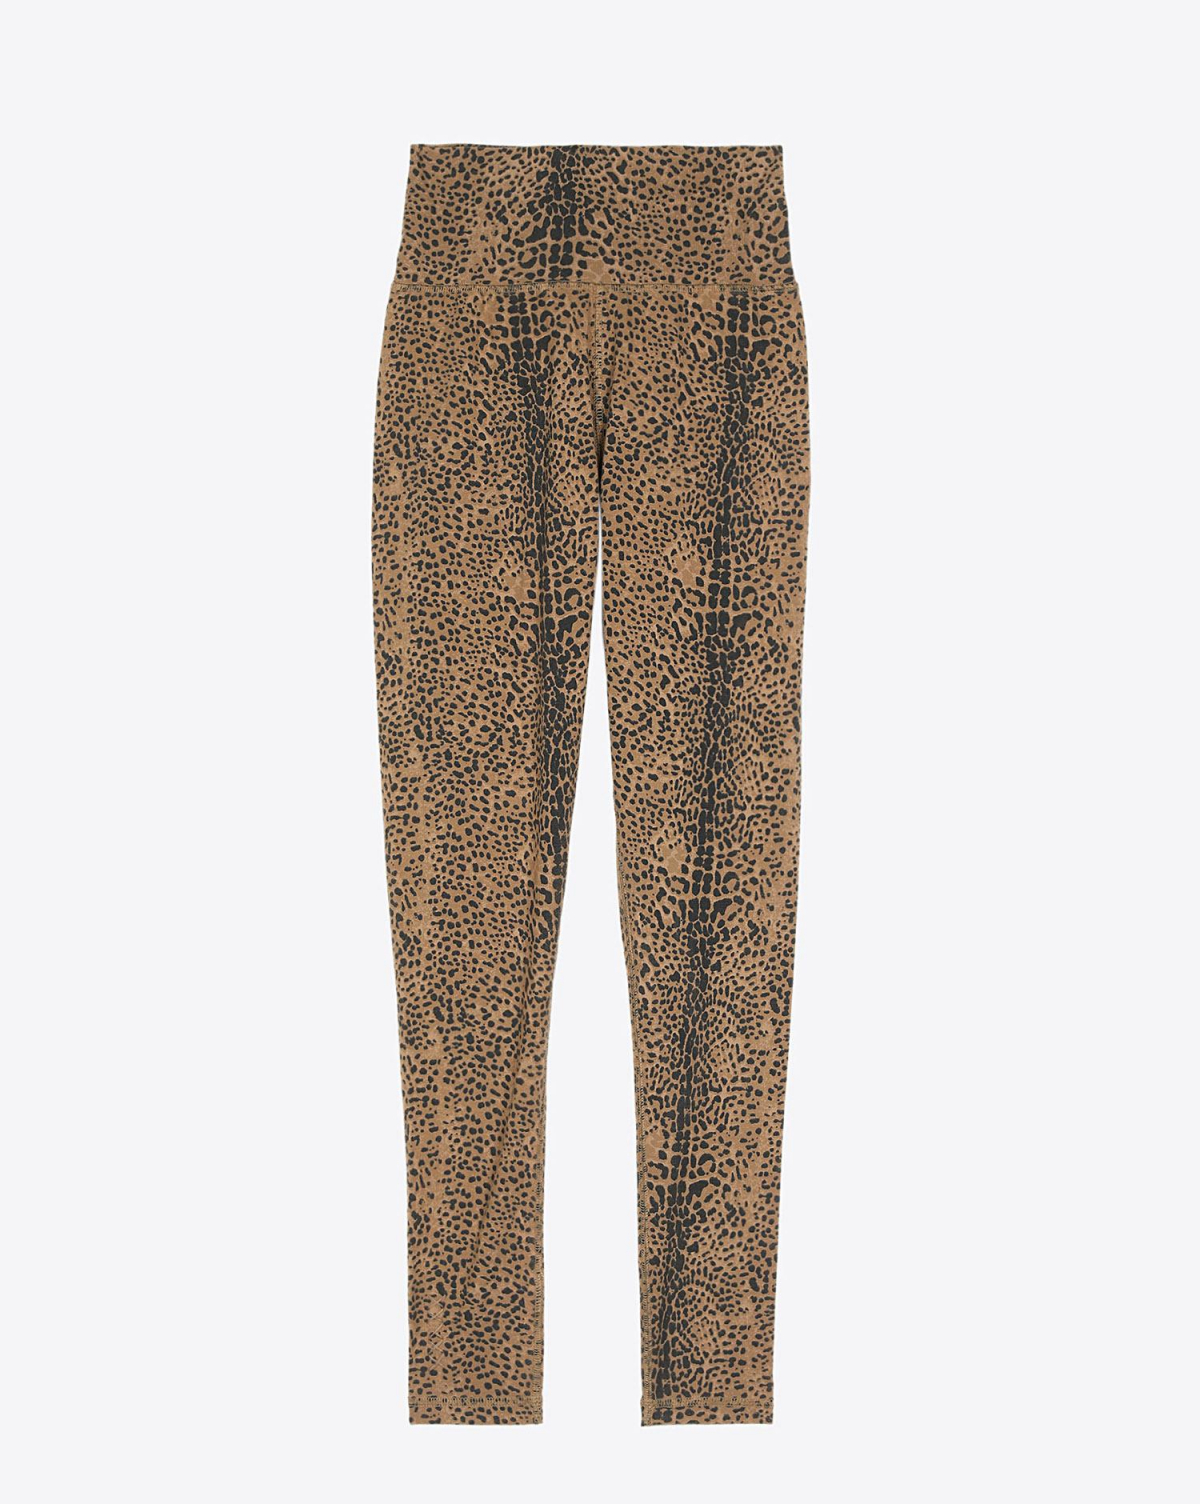 Ragdoll LA Leggings - Dark Brown Mini Leopard